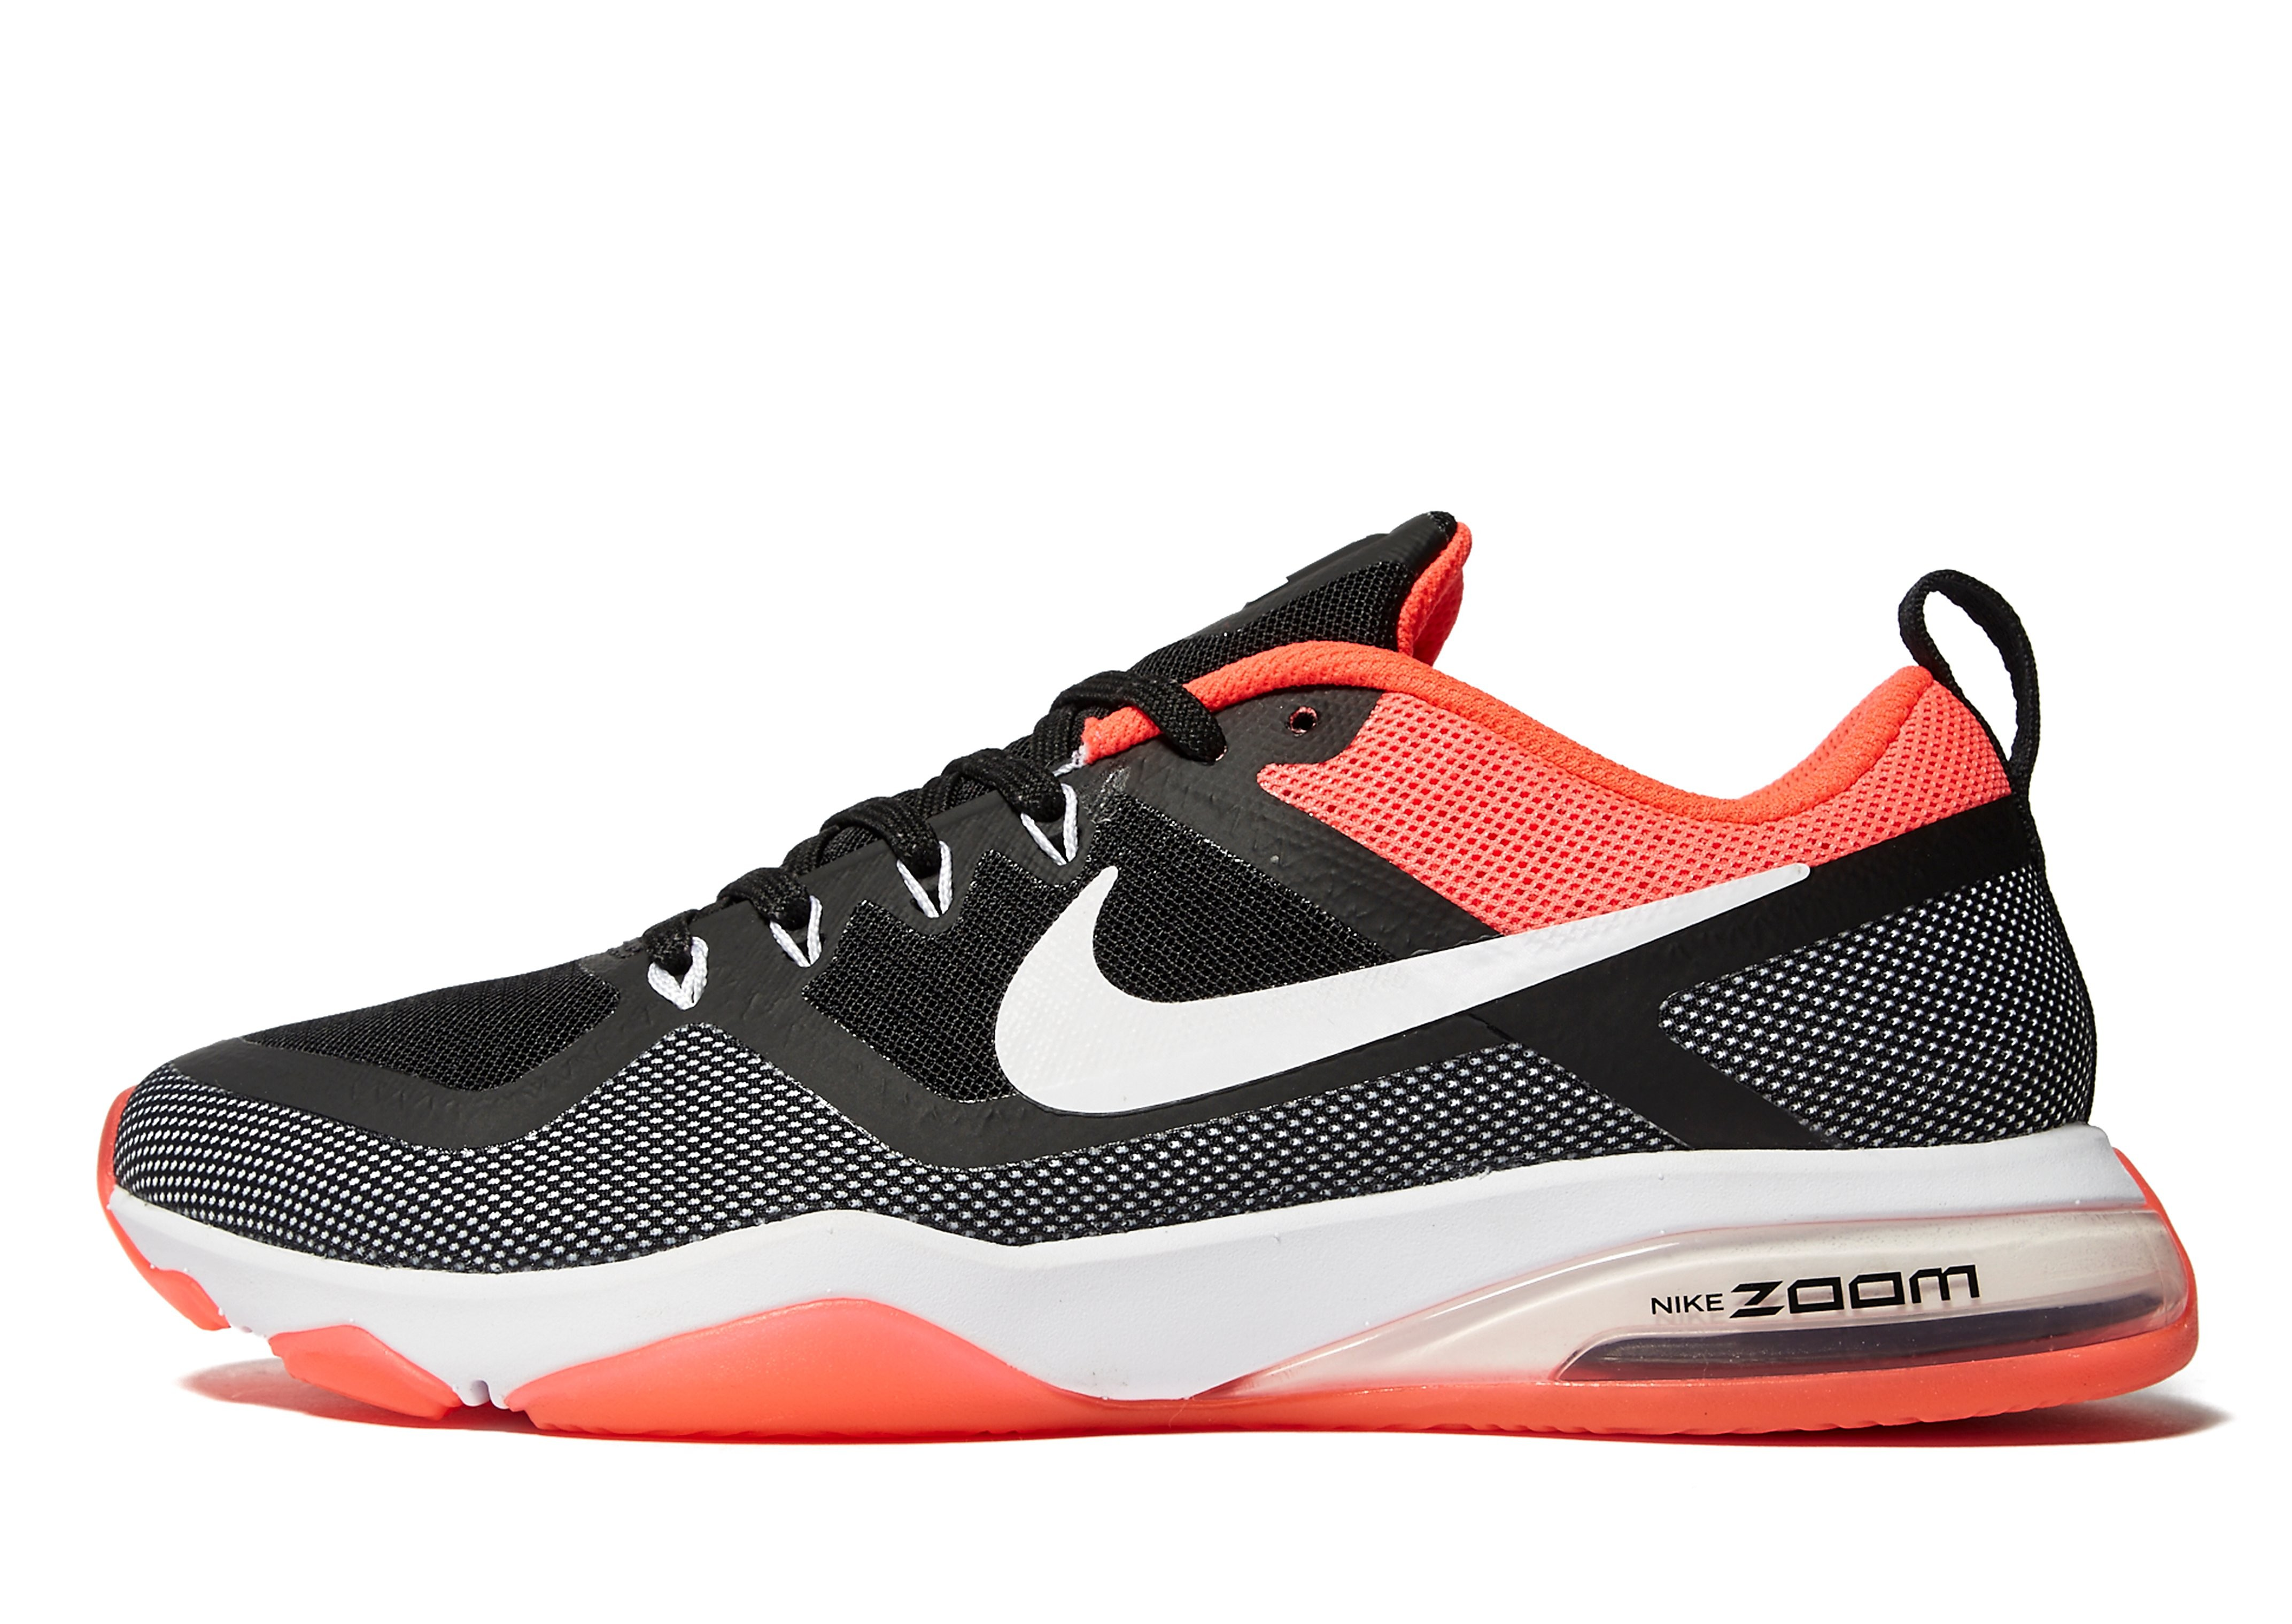 Nike Zoom Fitness Women's